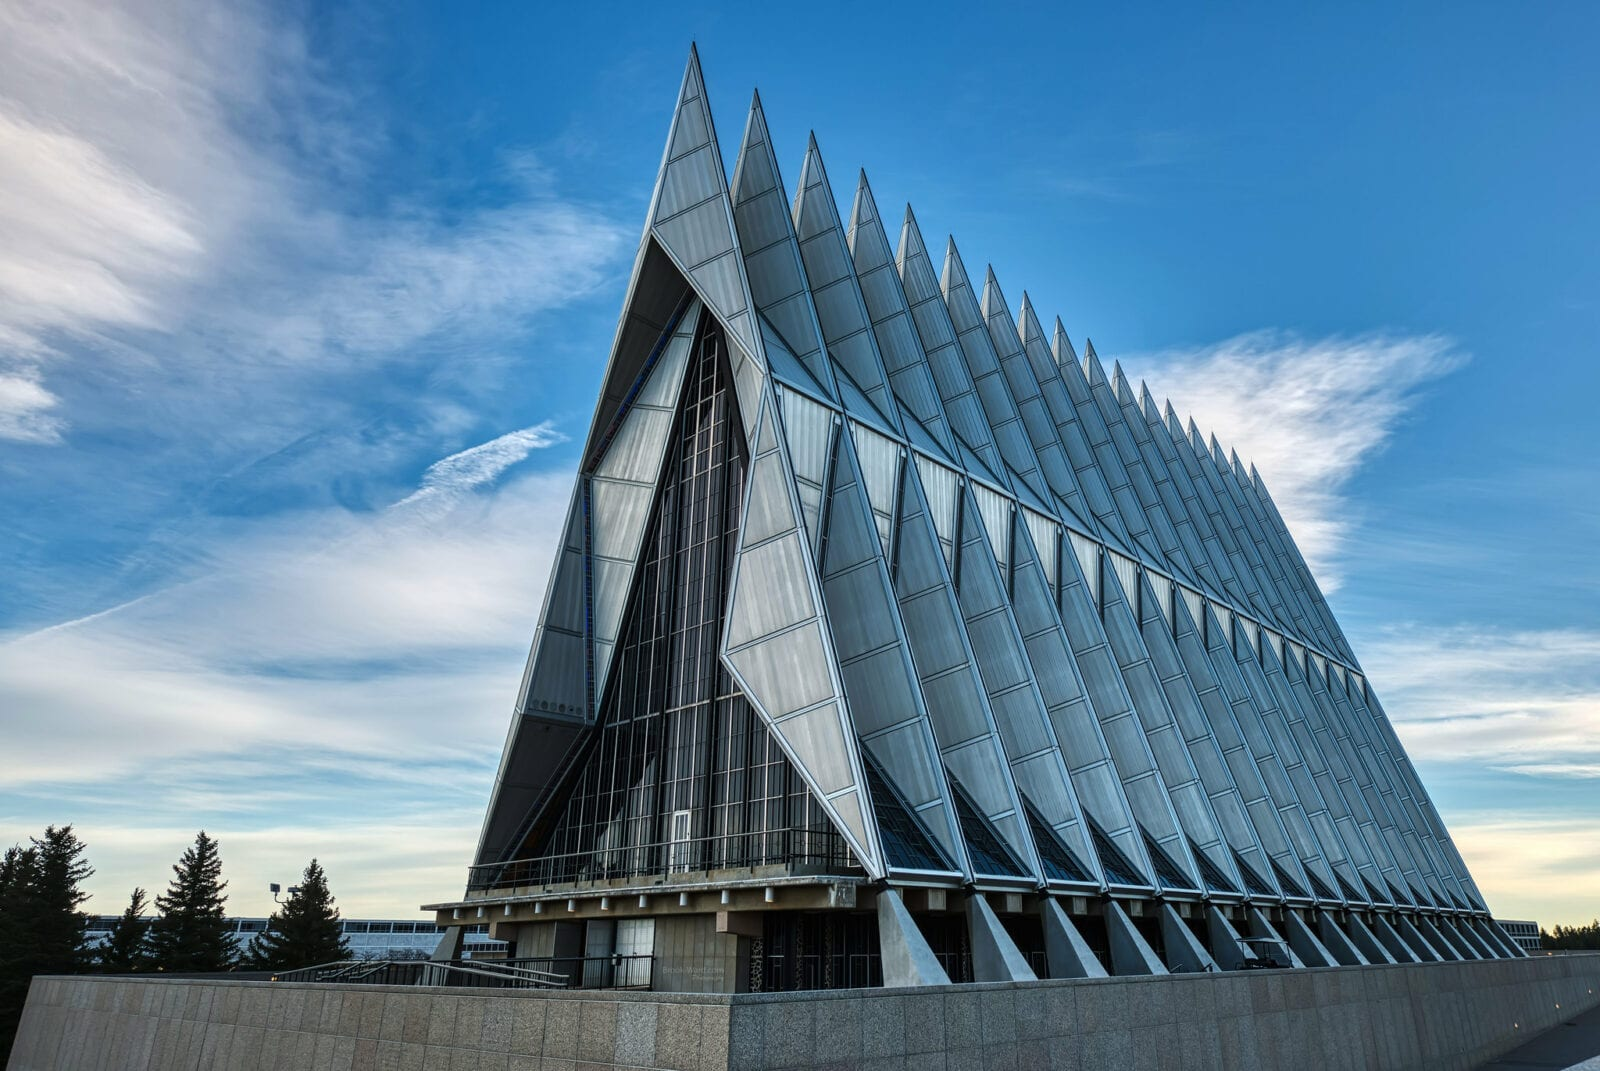 Image of the exterior of the US Air Force Cadet Chapel in Colorado Springs, Colorado